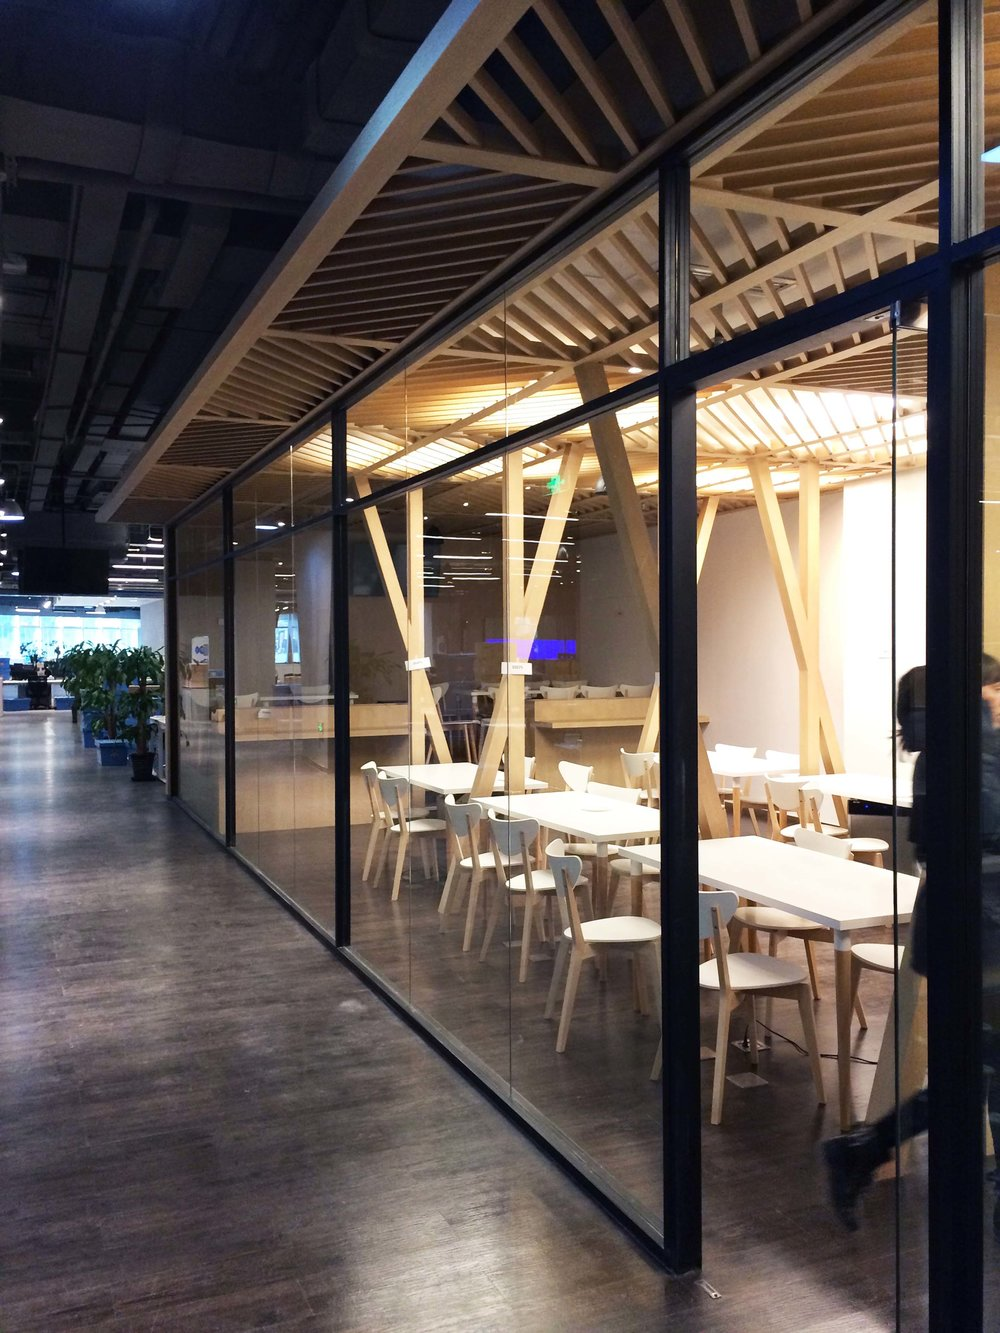 The pantry was designed to feel calm, airy and fresh. A timber slatted canopy with artificial skylights defines the space, while tree-like columns accentuate its verticality. A full height glass wall replaced a solid partition to allow natural daylight to enter the space from the building's atrium.